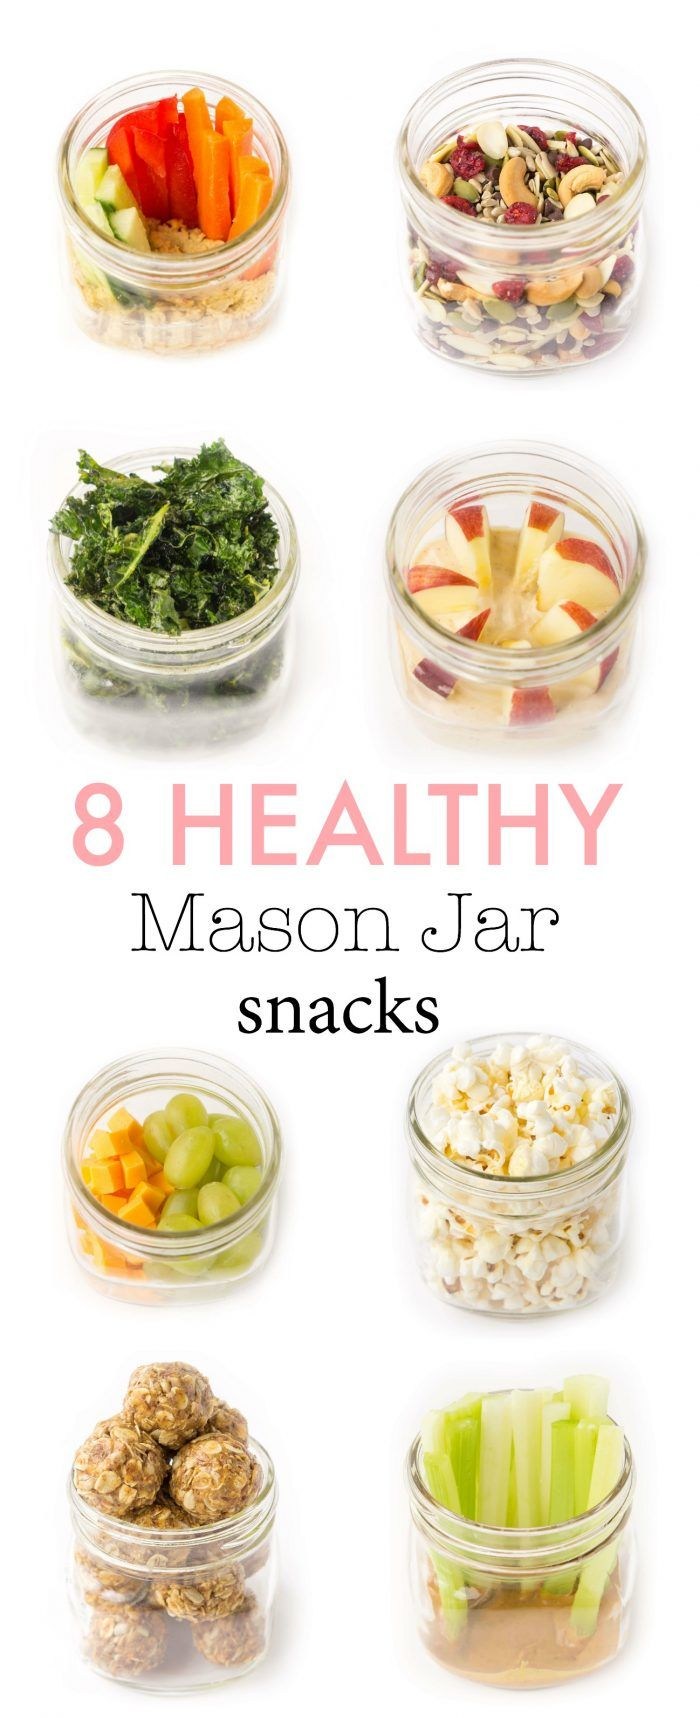 8 Healthy Make-Ahead Snack Ideas #healthyliving